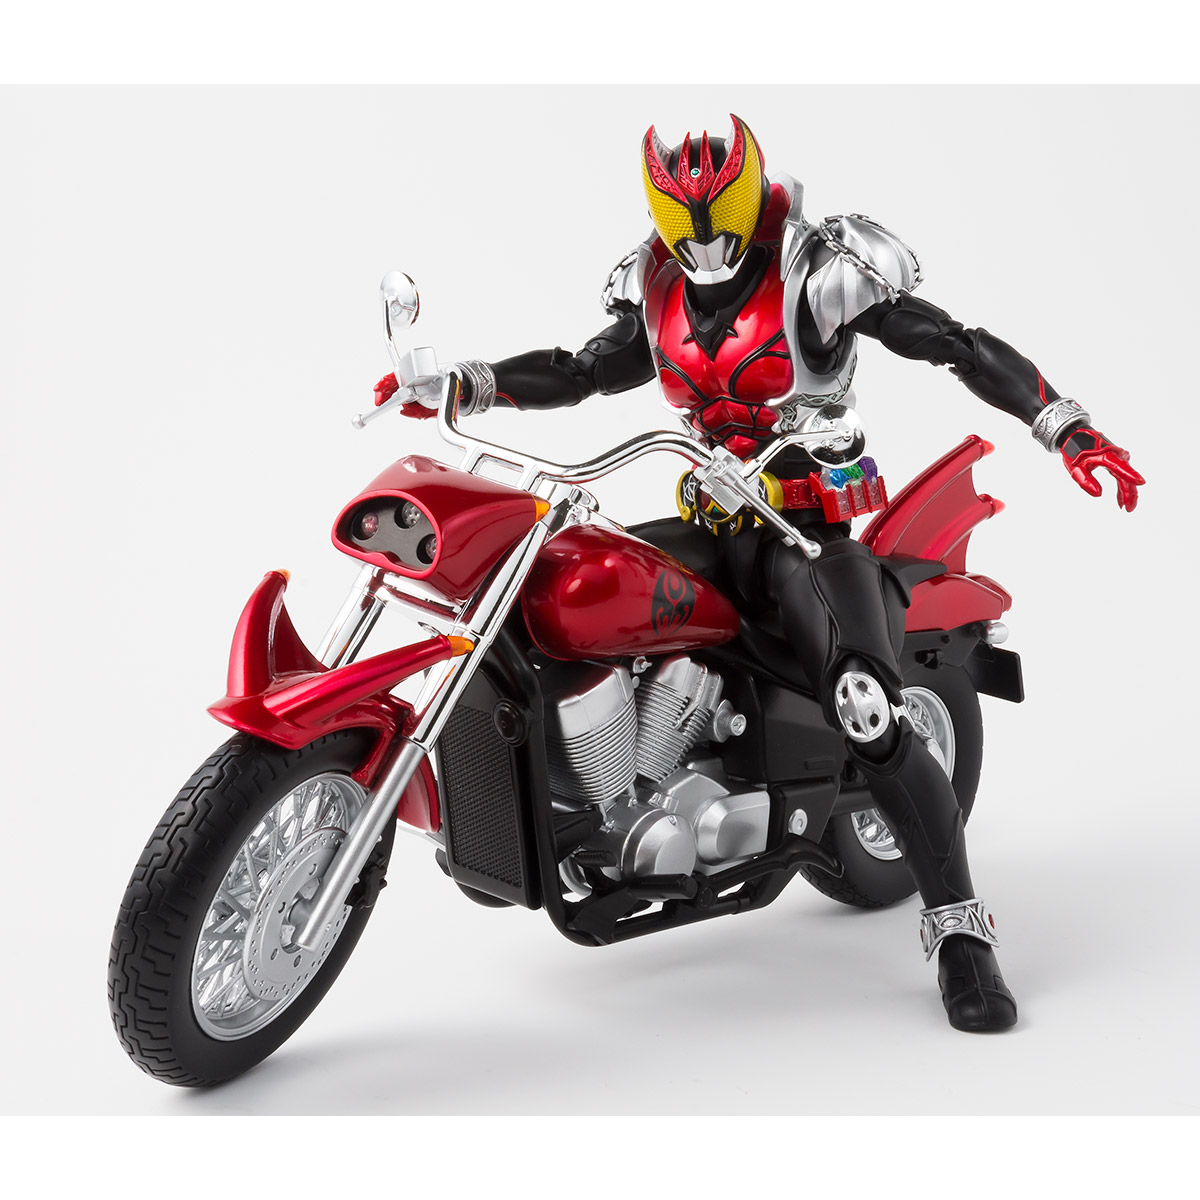 S.H.Figuarts MACHINE KIVAA OPTIONPARTS SET